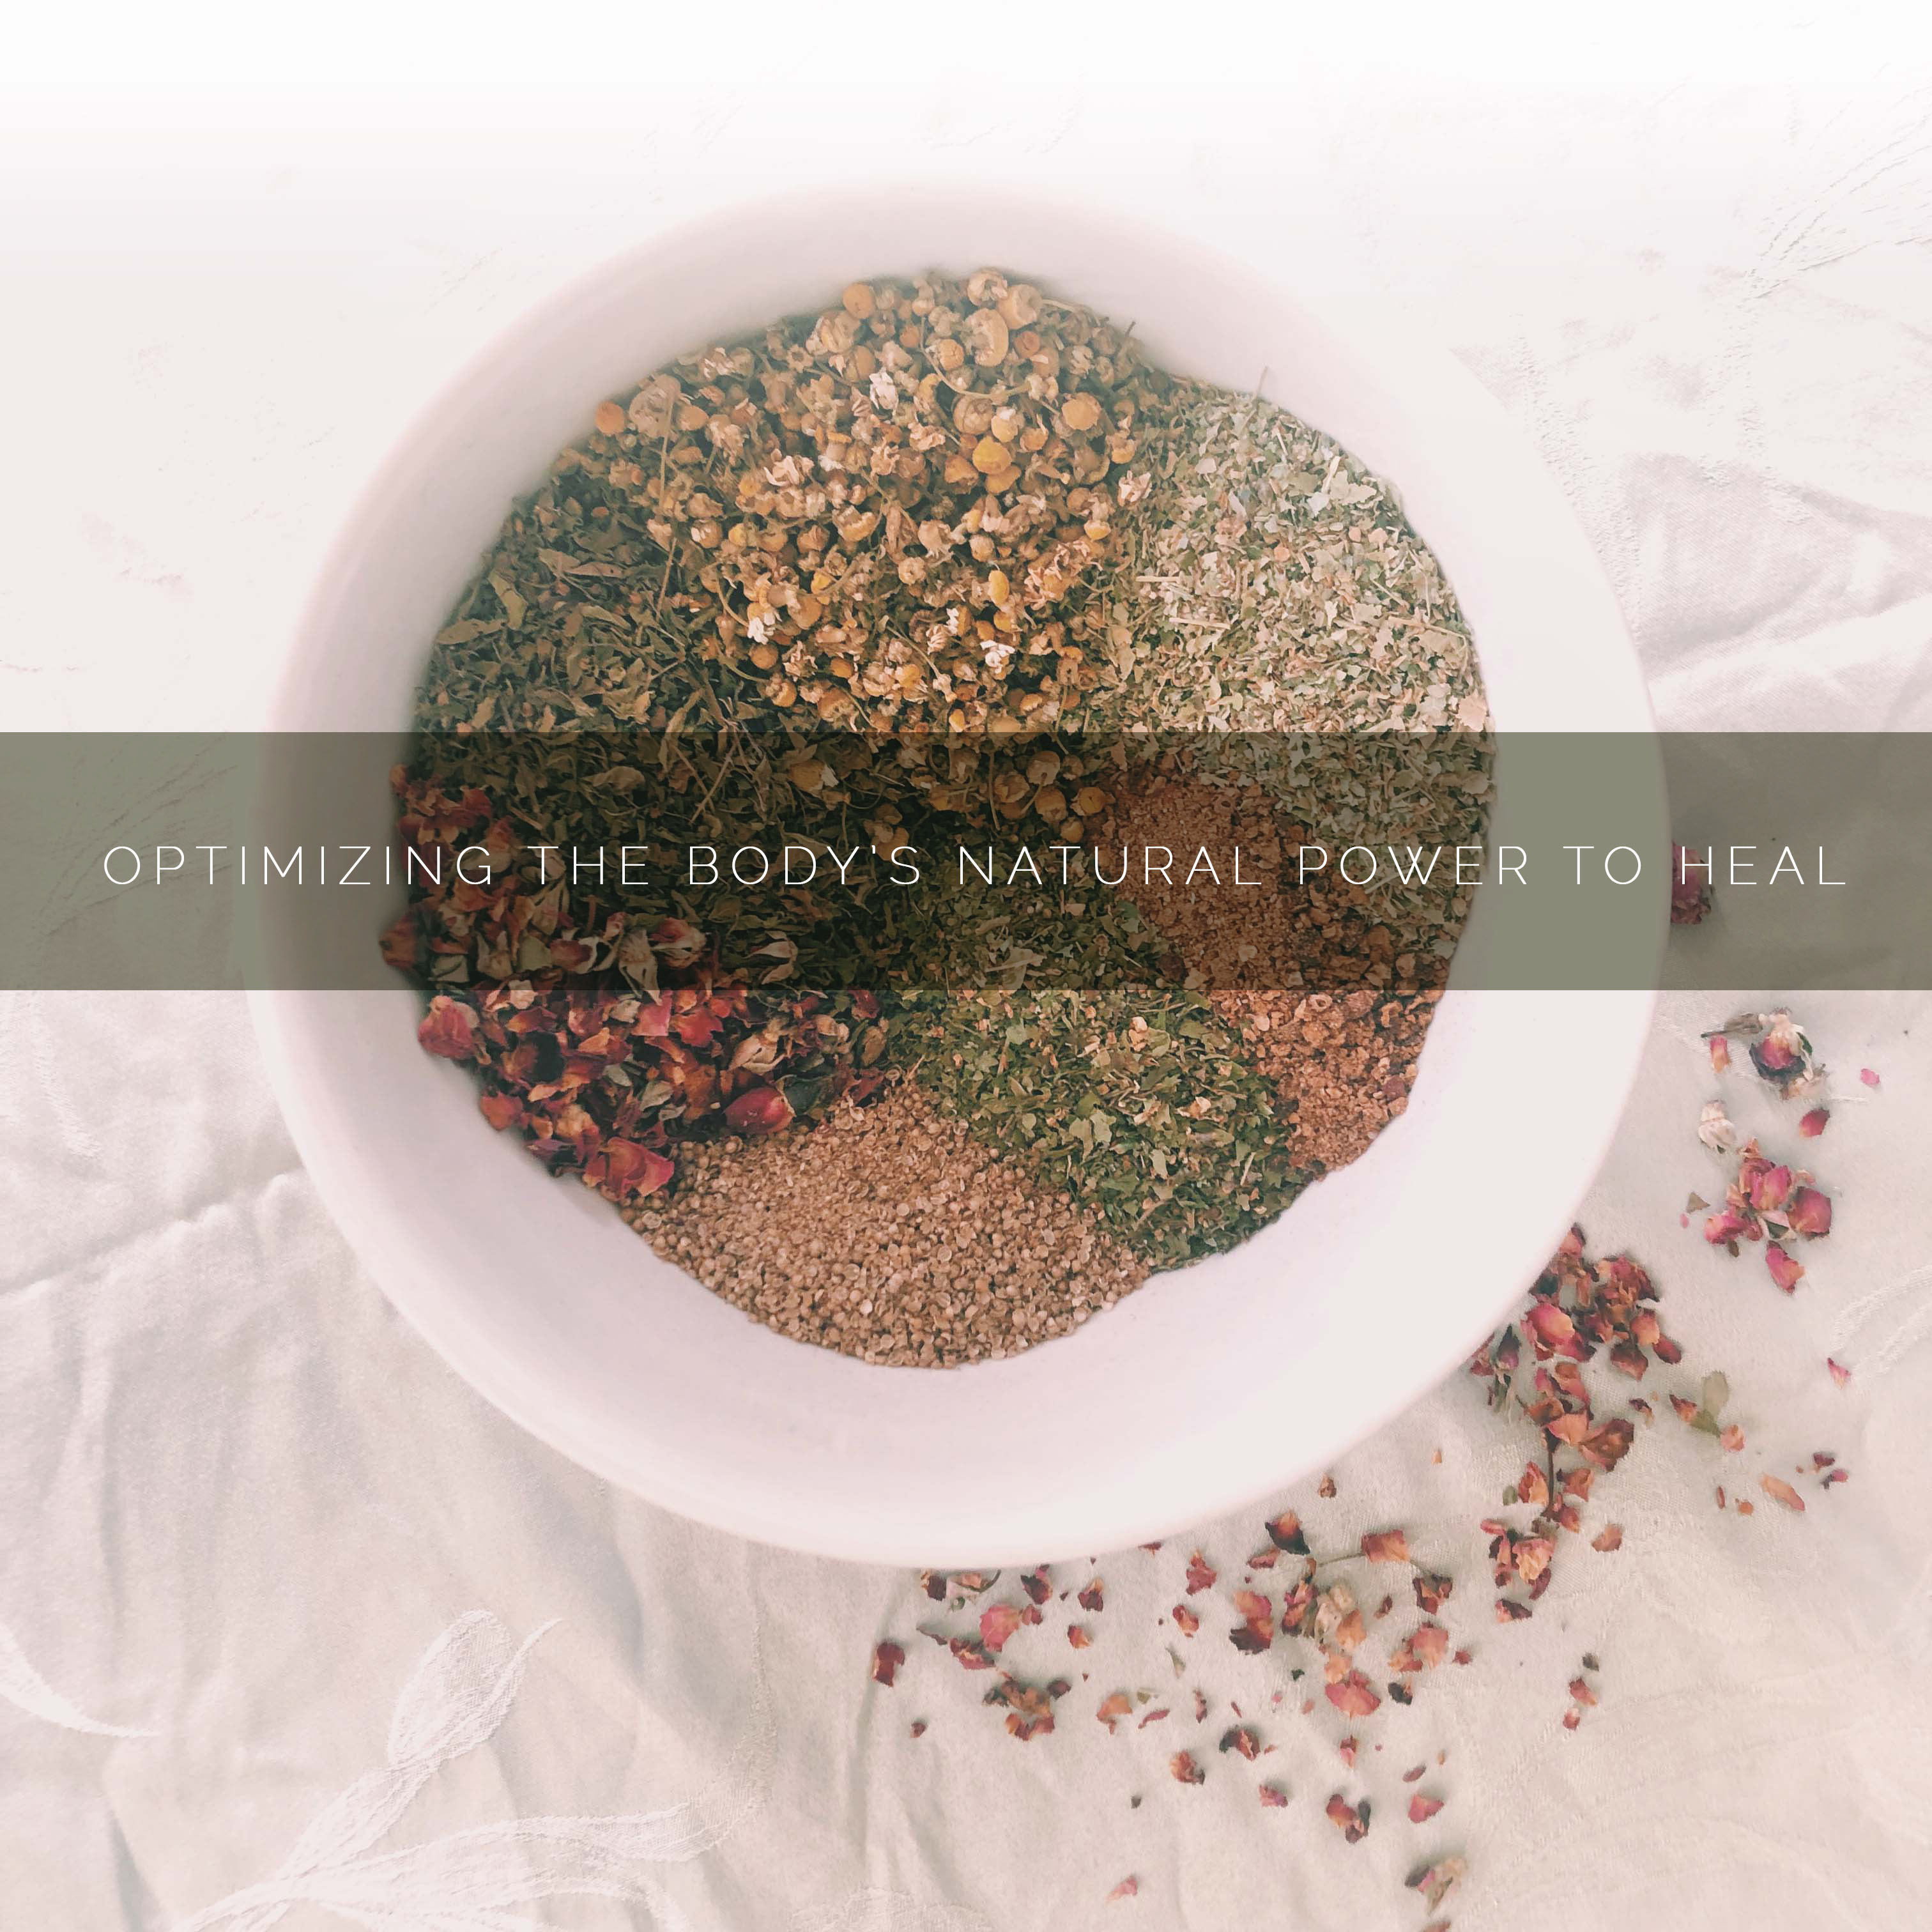 All natural tea blend handmade by clinical herbalist Darcy nick